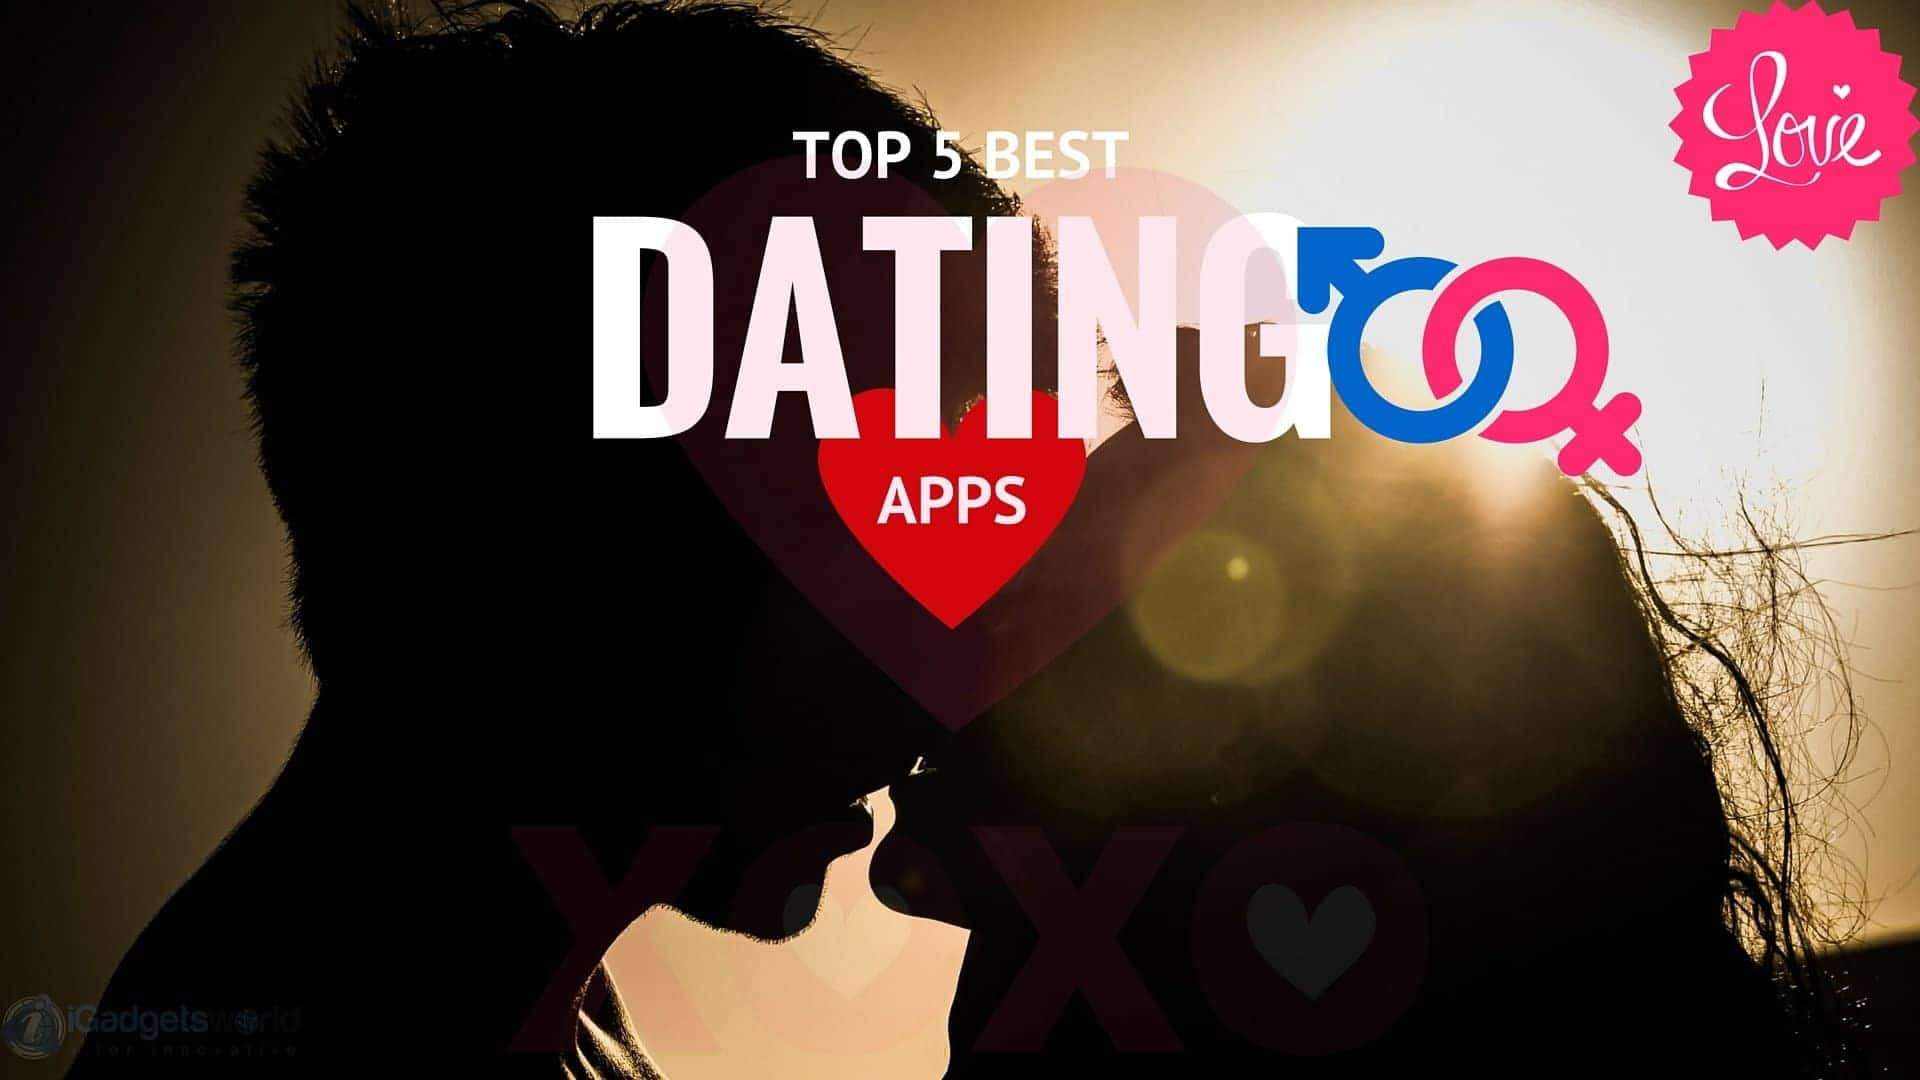 Top Dating Apps In India 2016